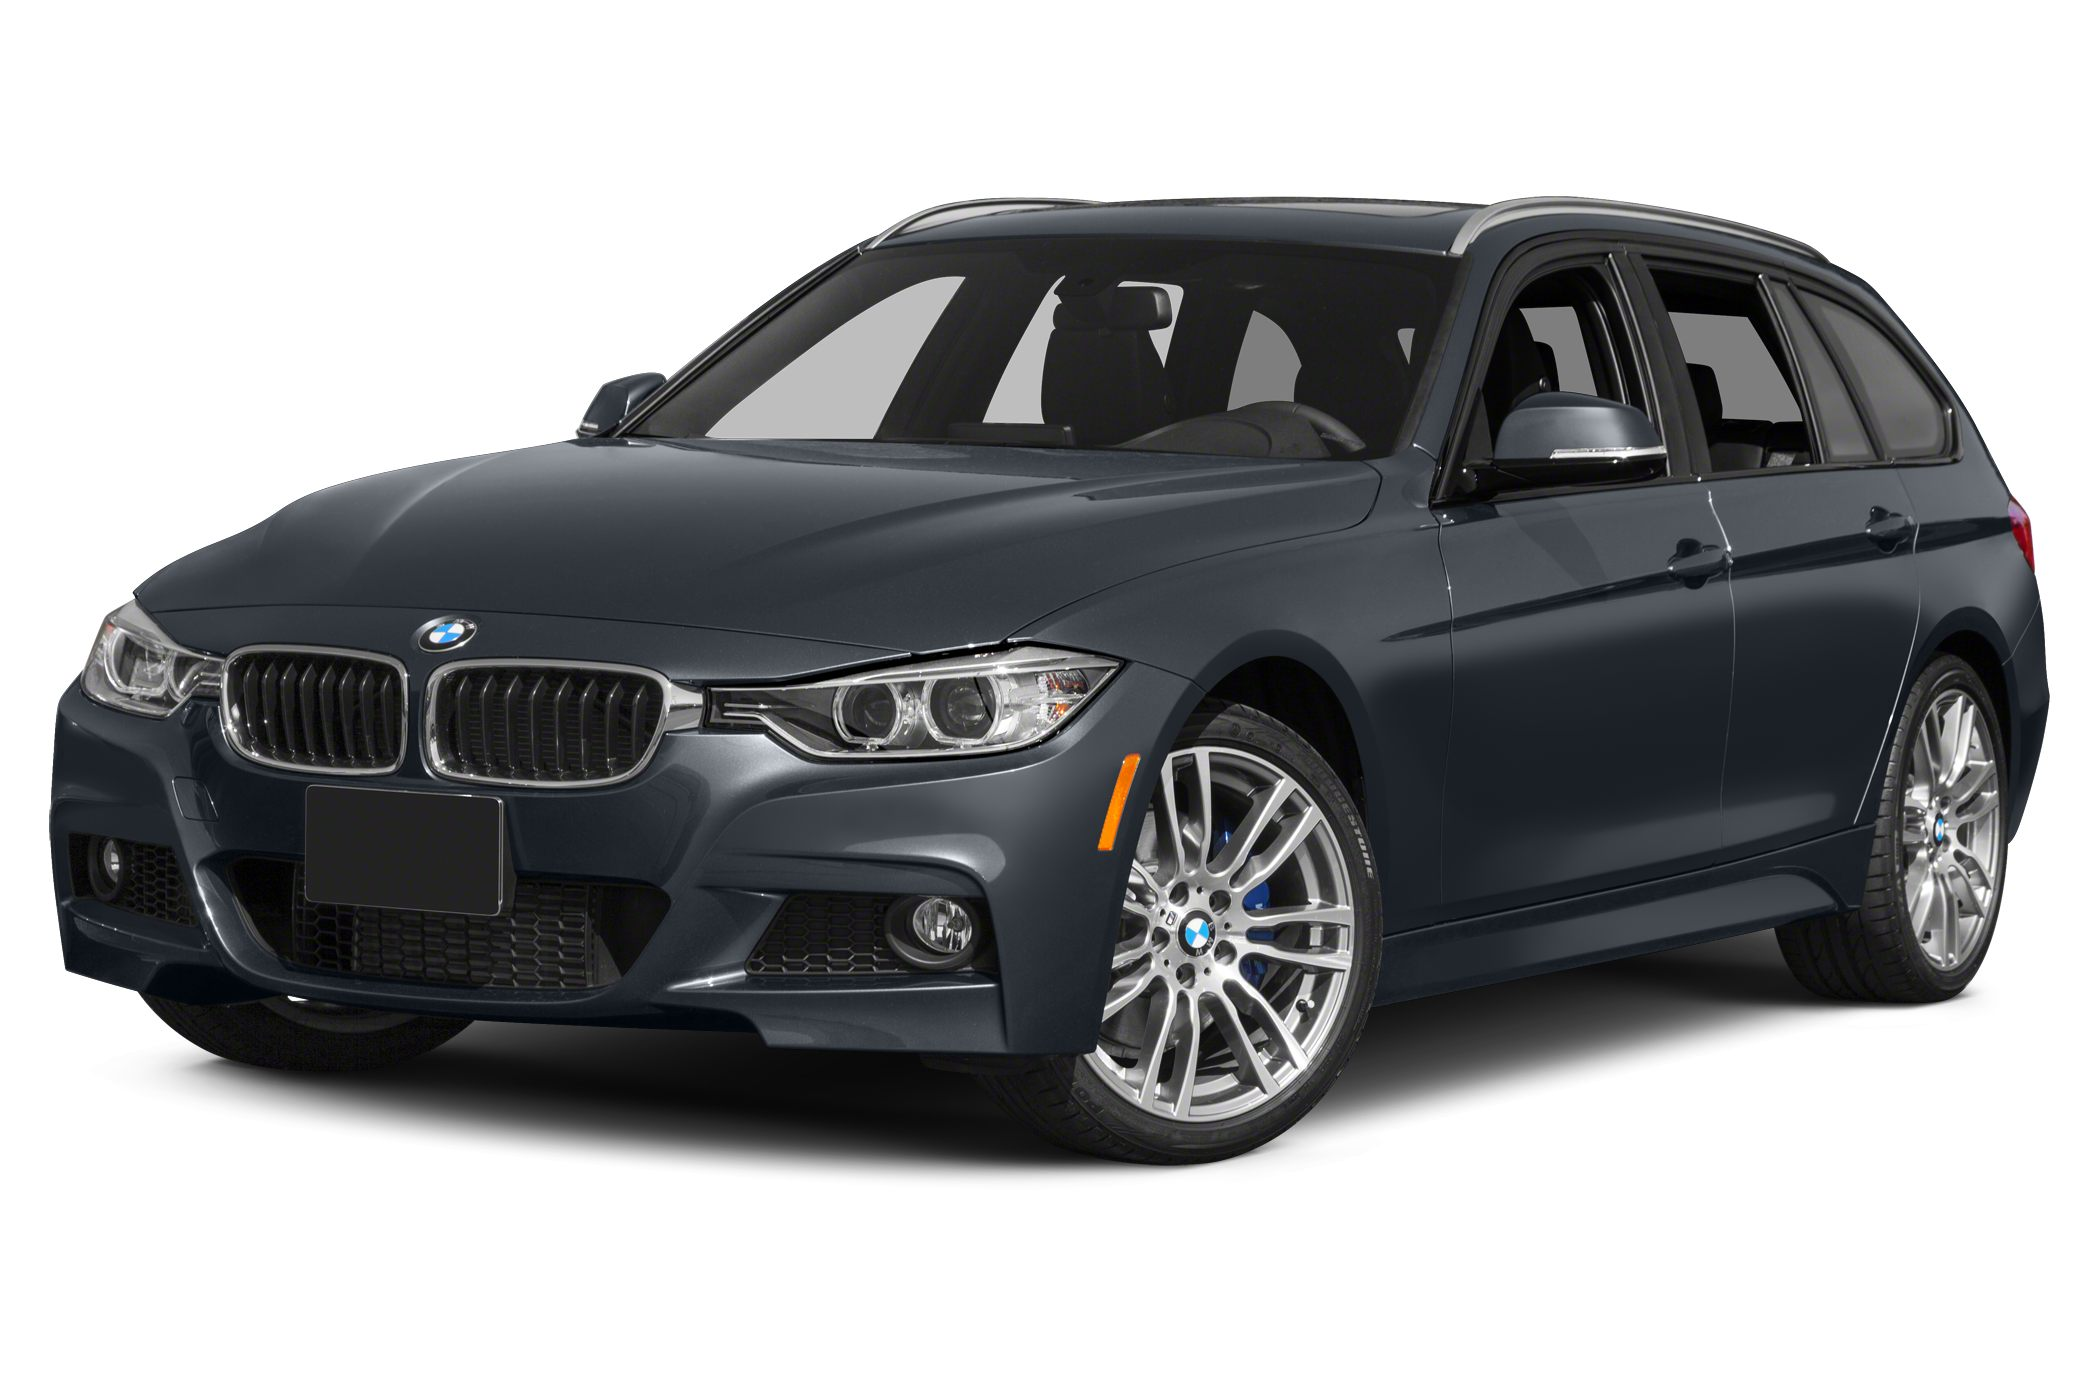 2015 BMW 328 I XDrive Sedan for sale in Bloomfield for $48,750 with 11 miles